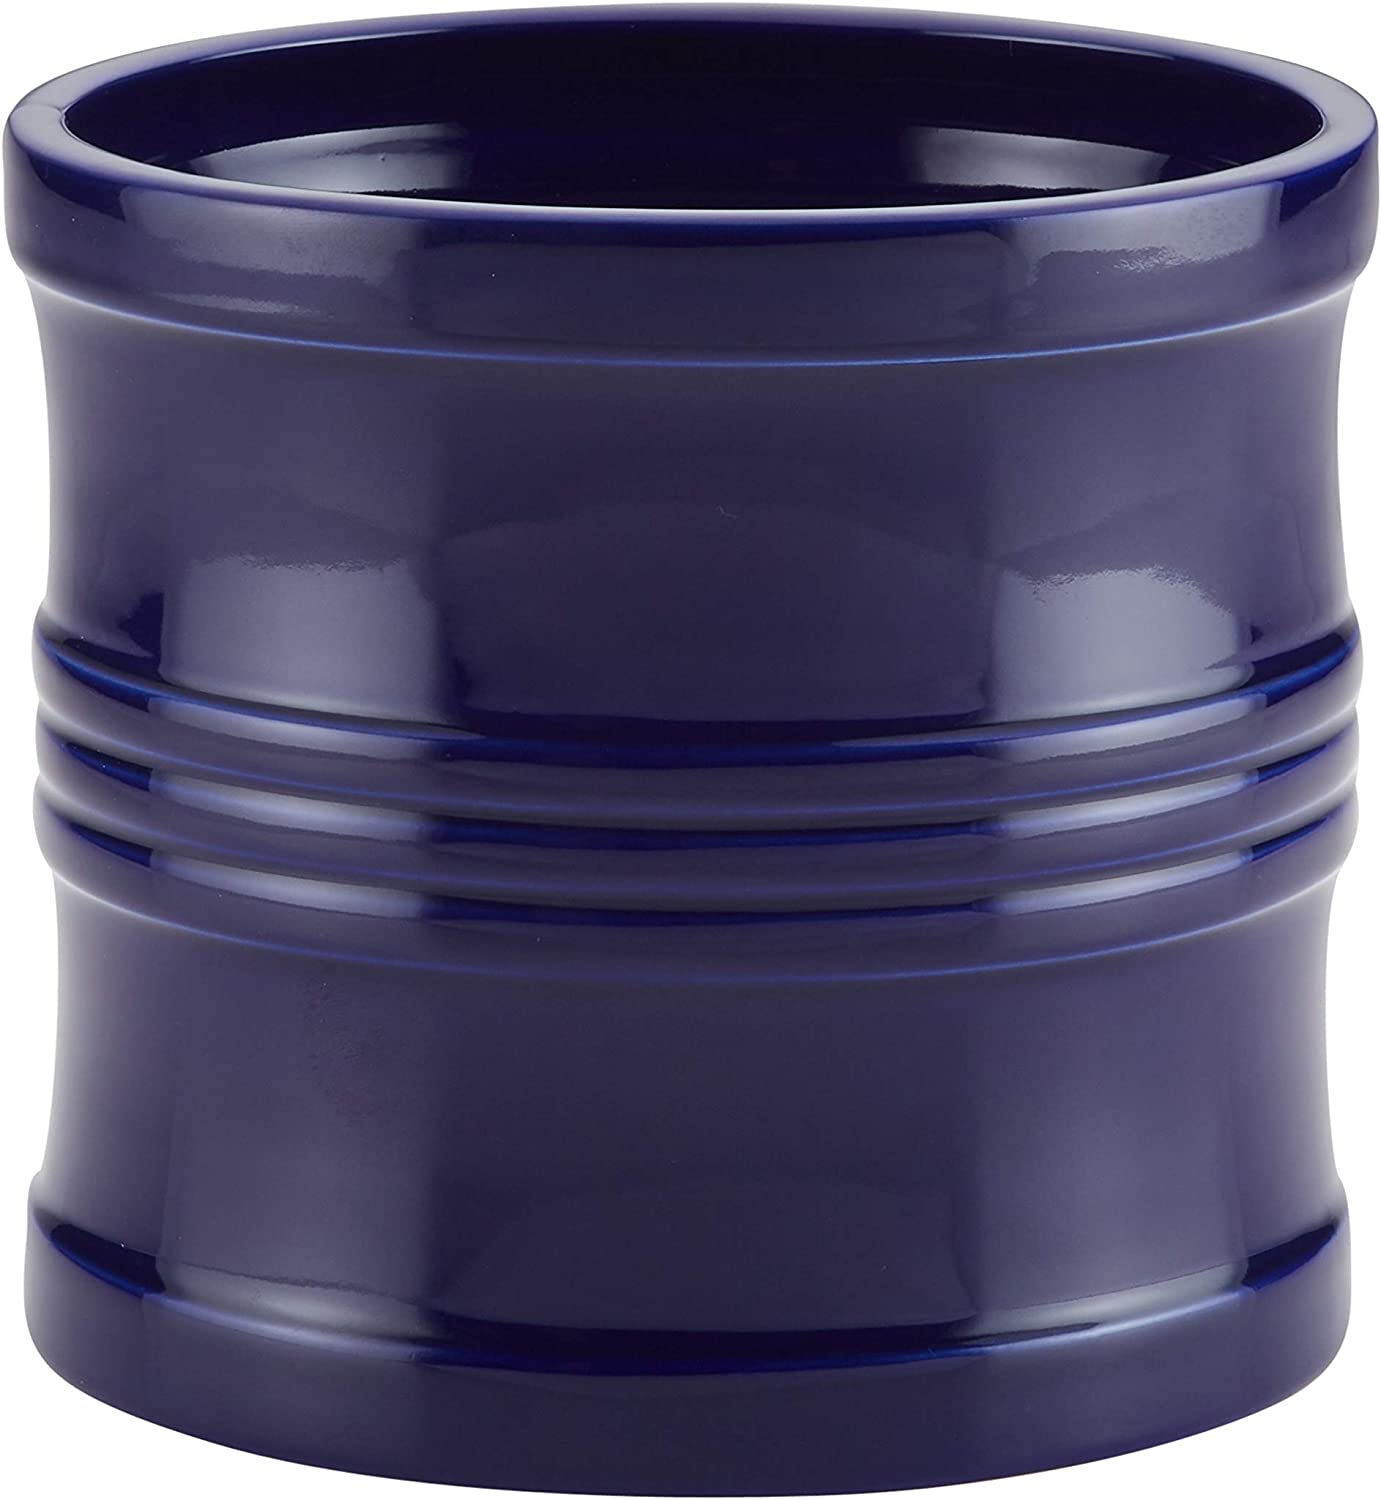 Circulon Ceramics Tool Crock with Partition Insert, 7.5-Inch, Navy bluee